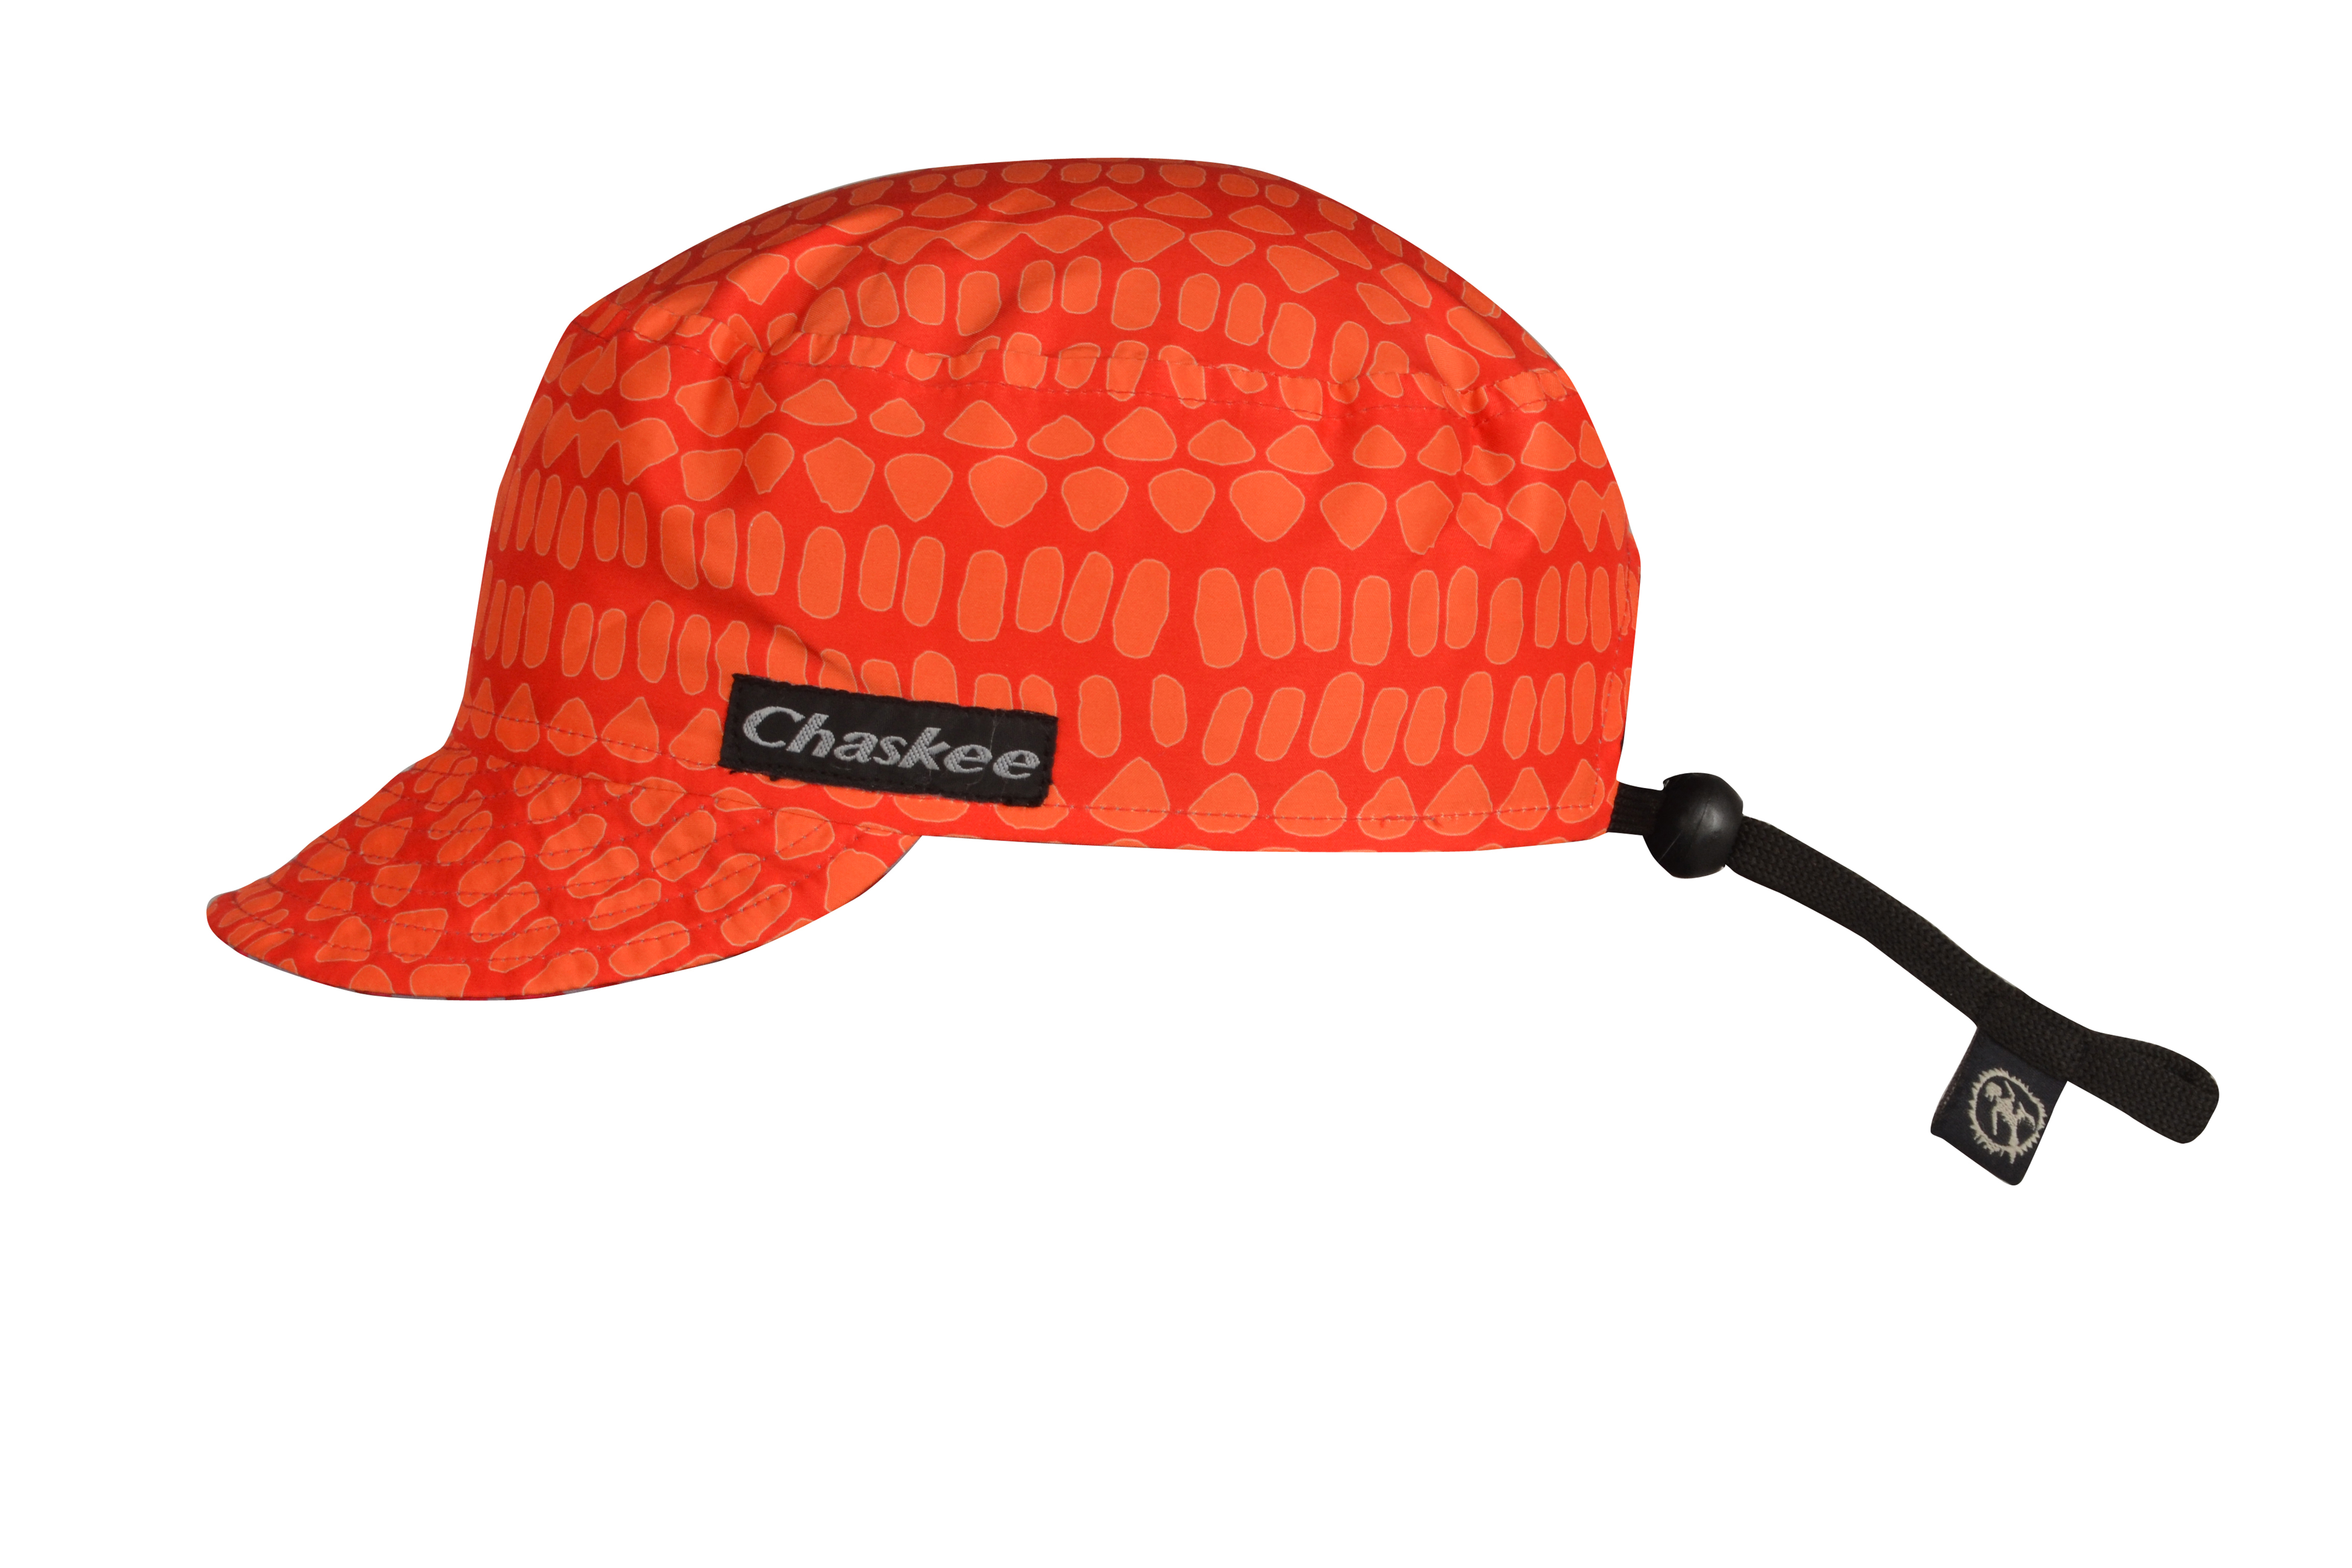 Chaskee Junior Rev Cap - Kinder Wendekappe orange